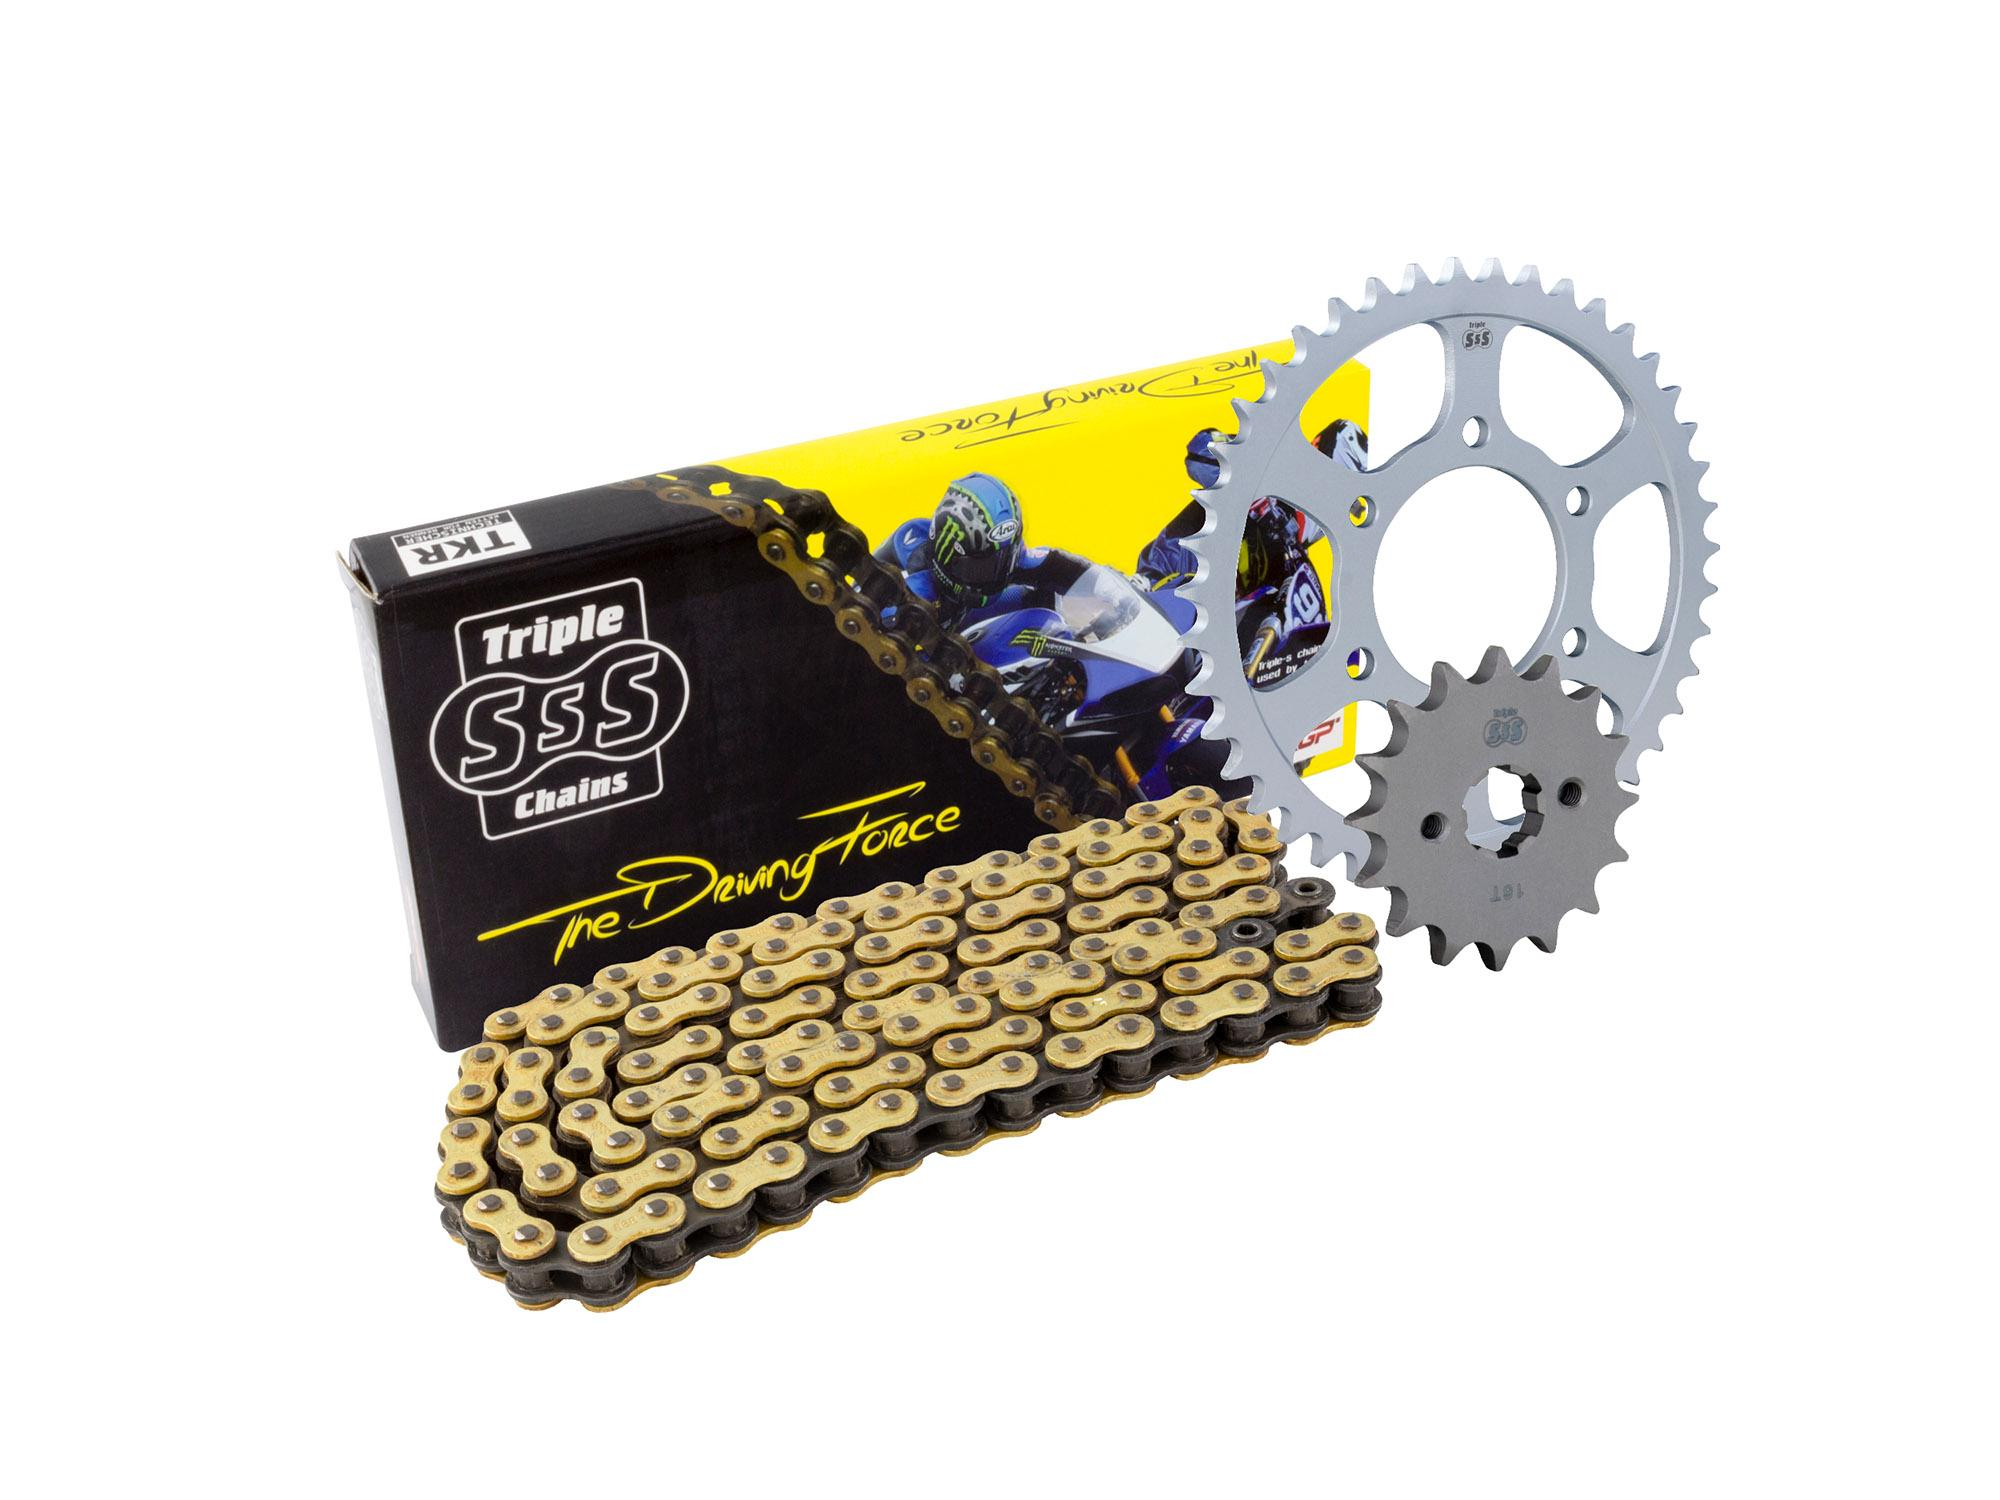 Kawasaki Z1000 ABS DAF 10 Chain & Sprocket Kit: 15T Front, 42T Rear, HD O-Ring Gold Chain 525H 112Link